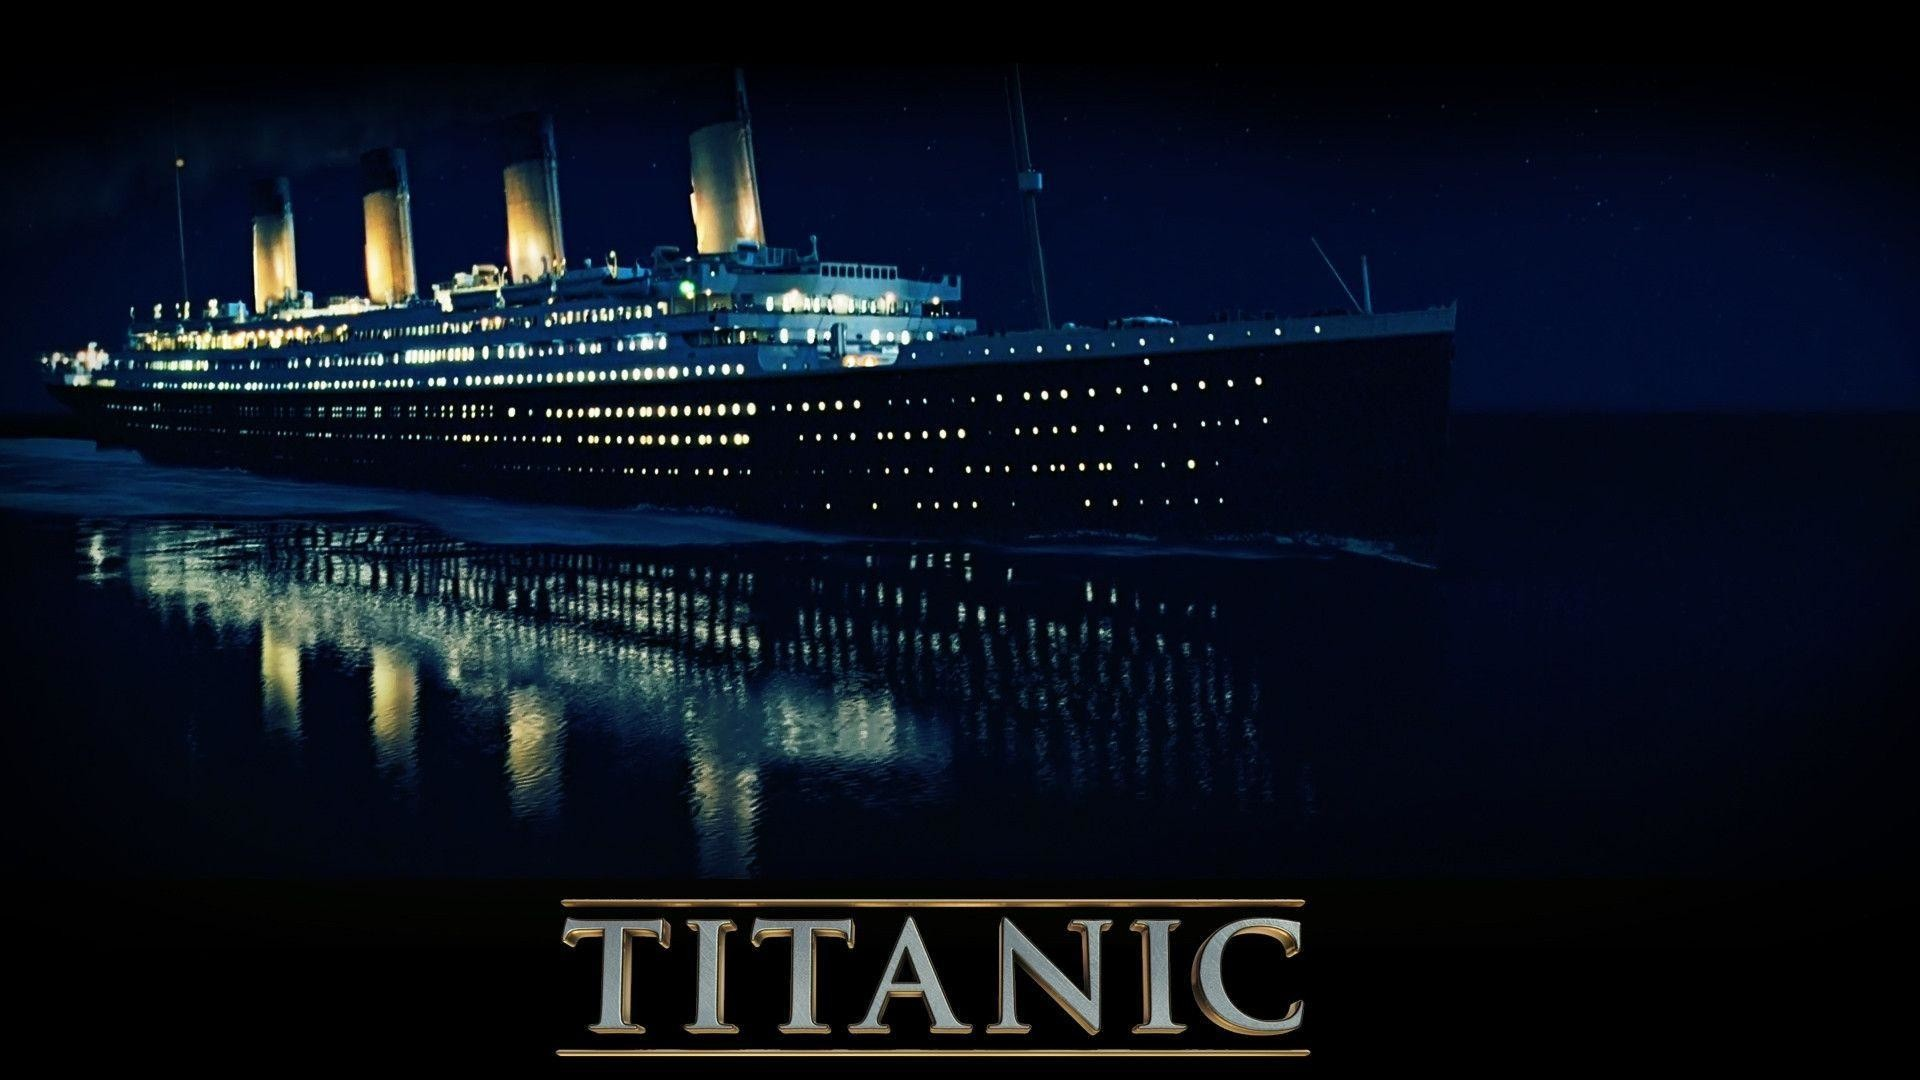 1920x1080 Titanic Ship Wallpapers | HD Wallpapers